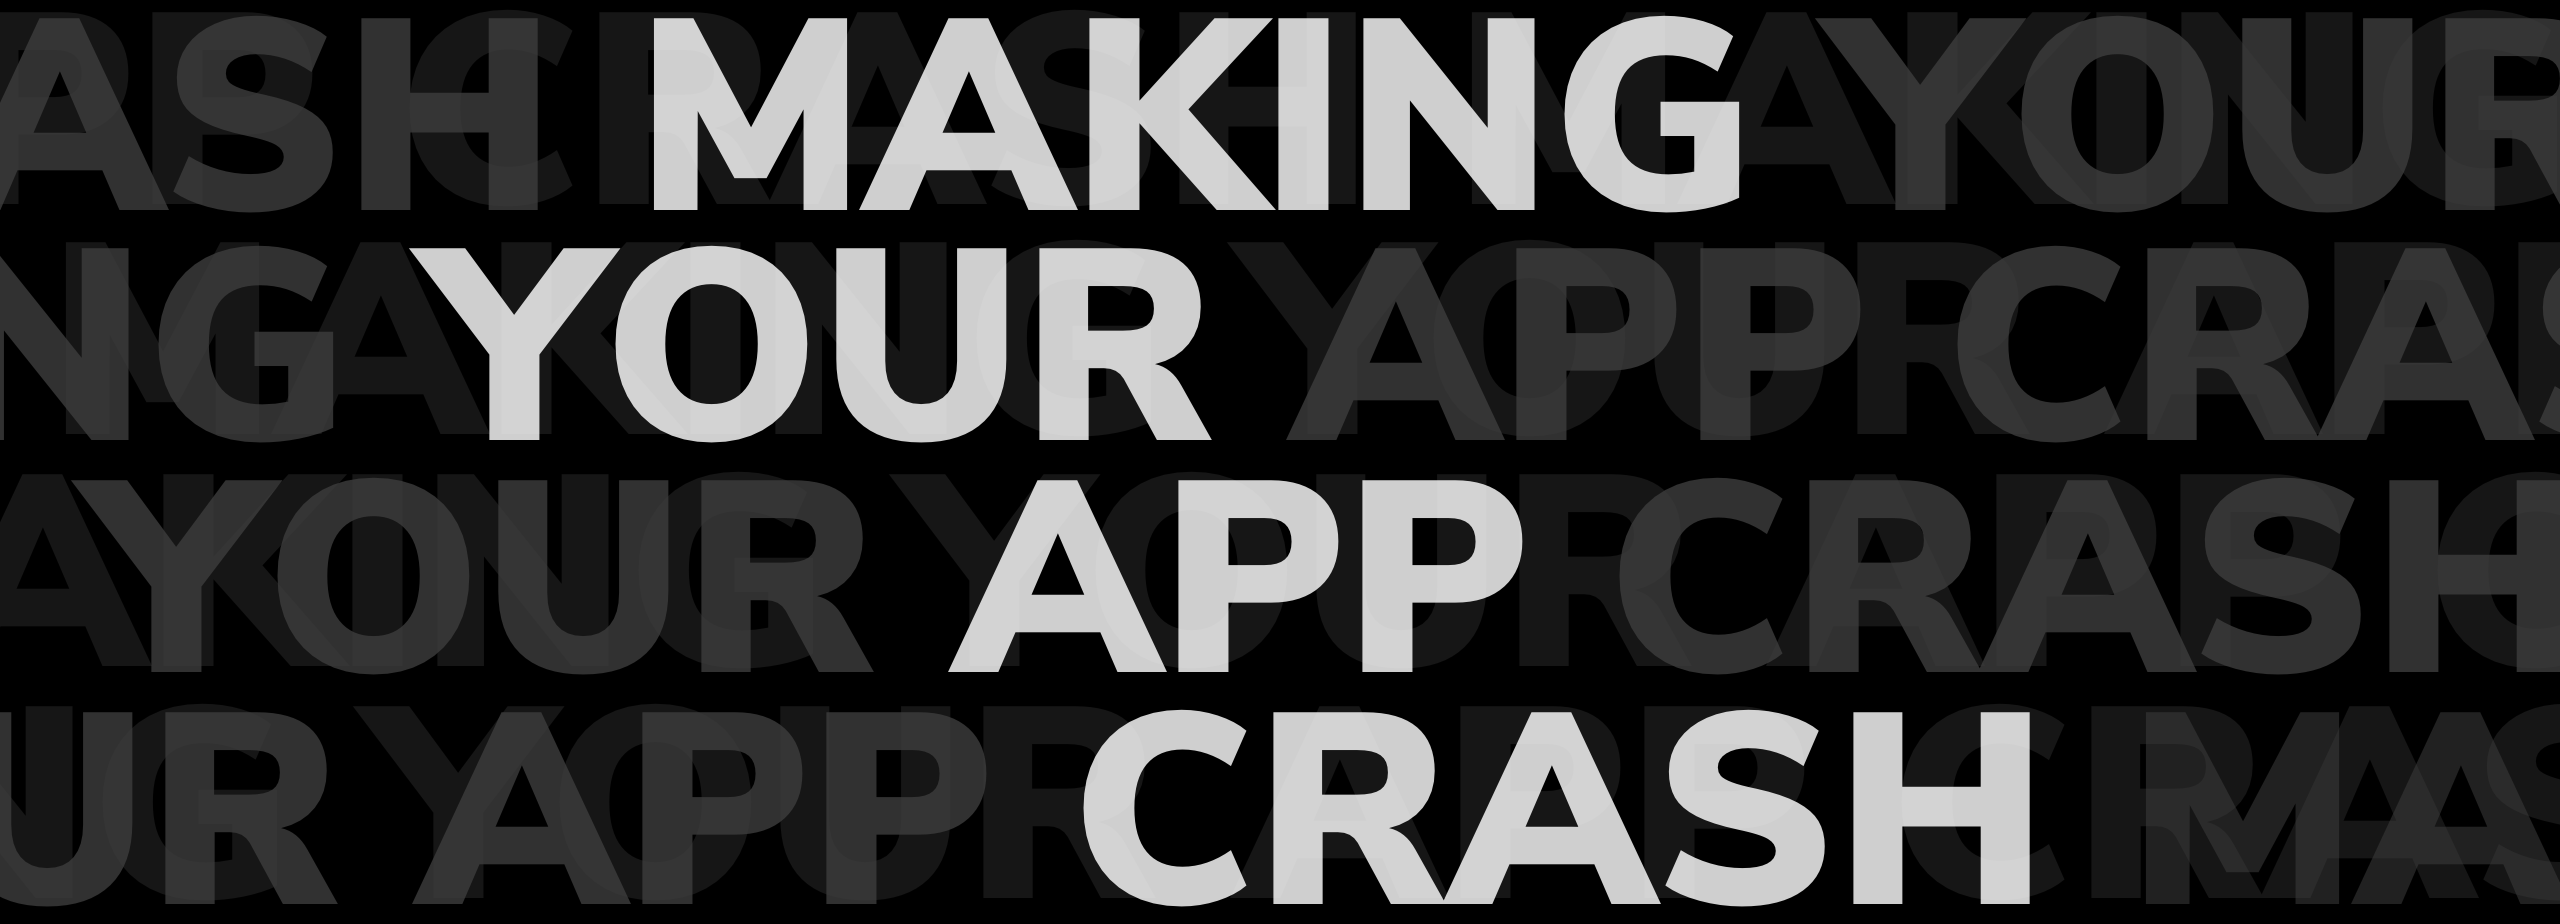 Making Your Android App Crash - Major League - Medium